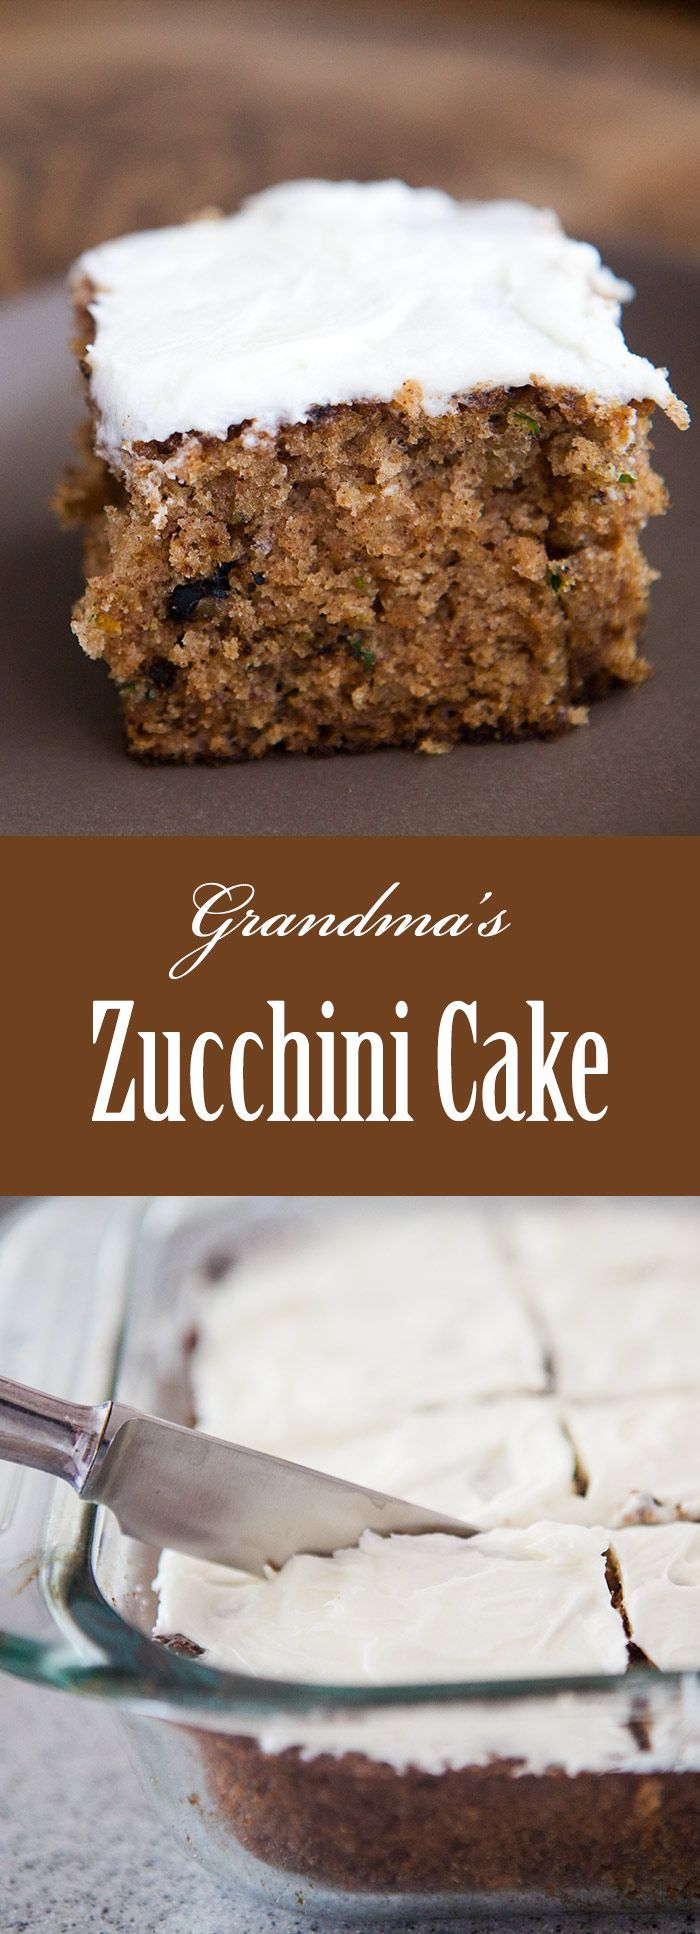 Grandma's Zucchini Cake ~ My grandmother's recipe for a gently spicy sheet cake, made with freshly grated zucchini. Great for a summer holiday gathering! On http://SimplyRecipes.com